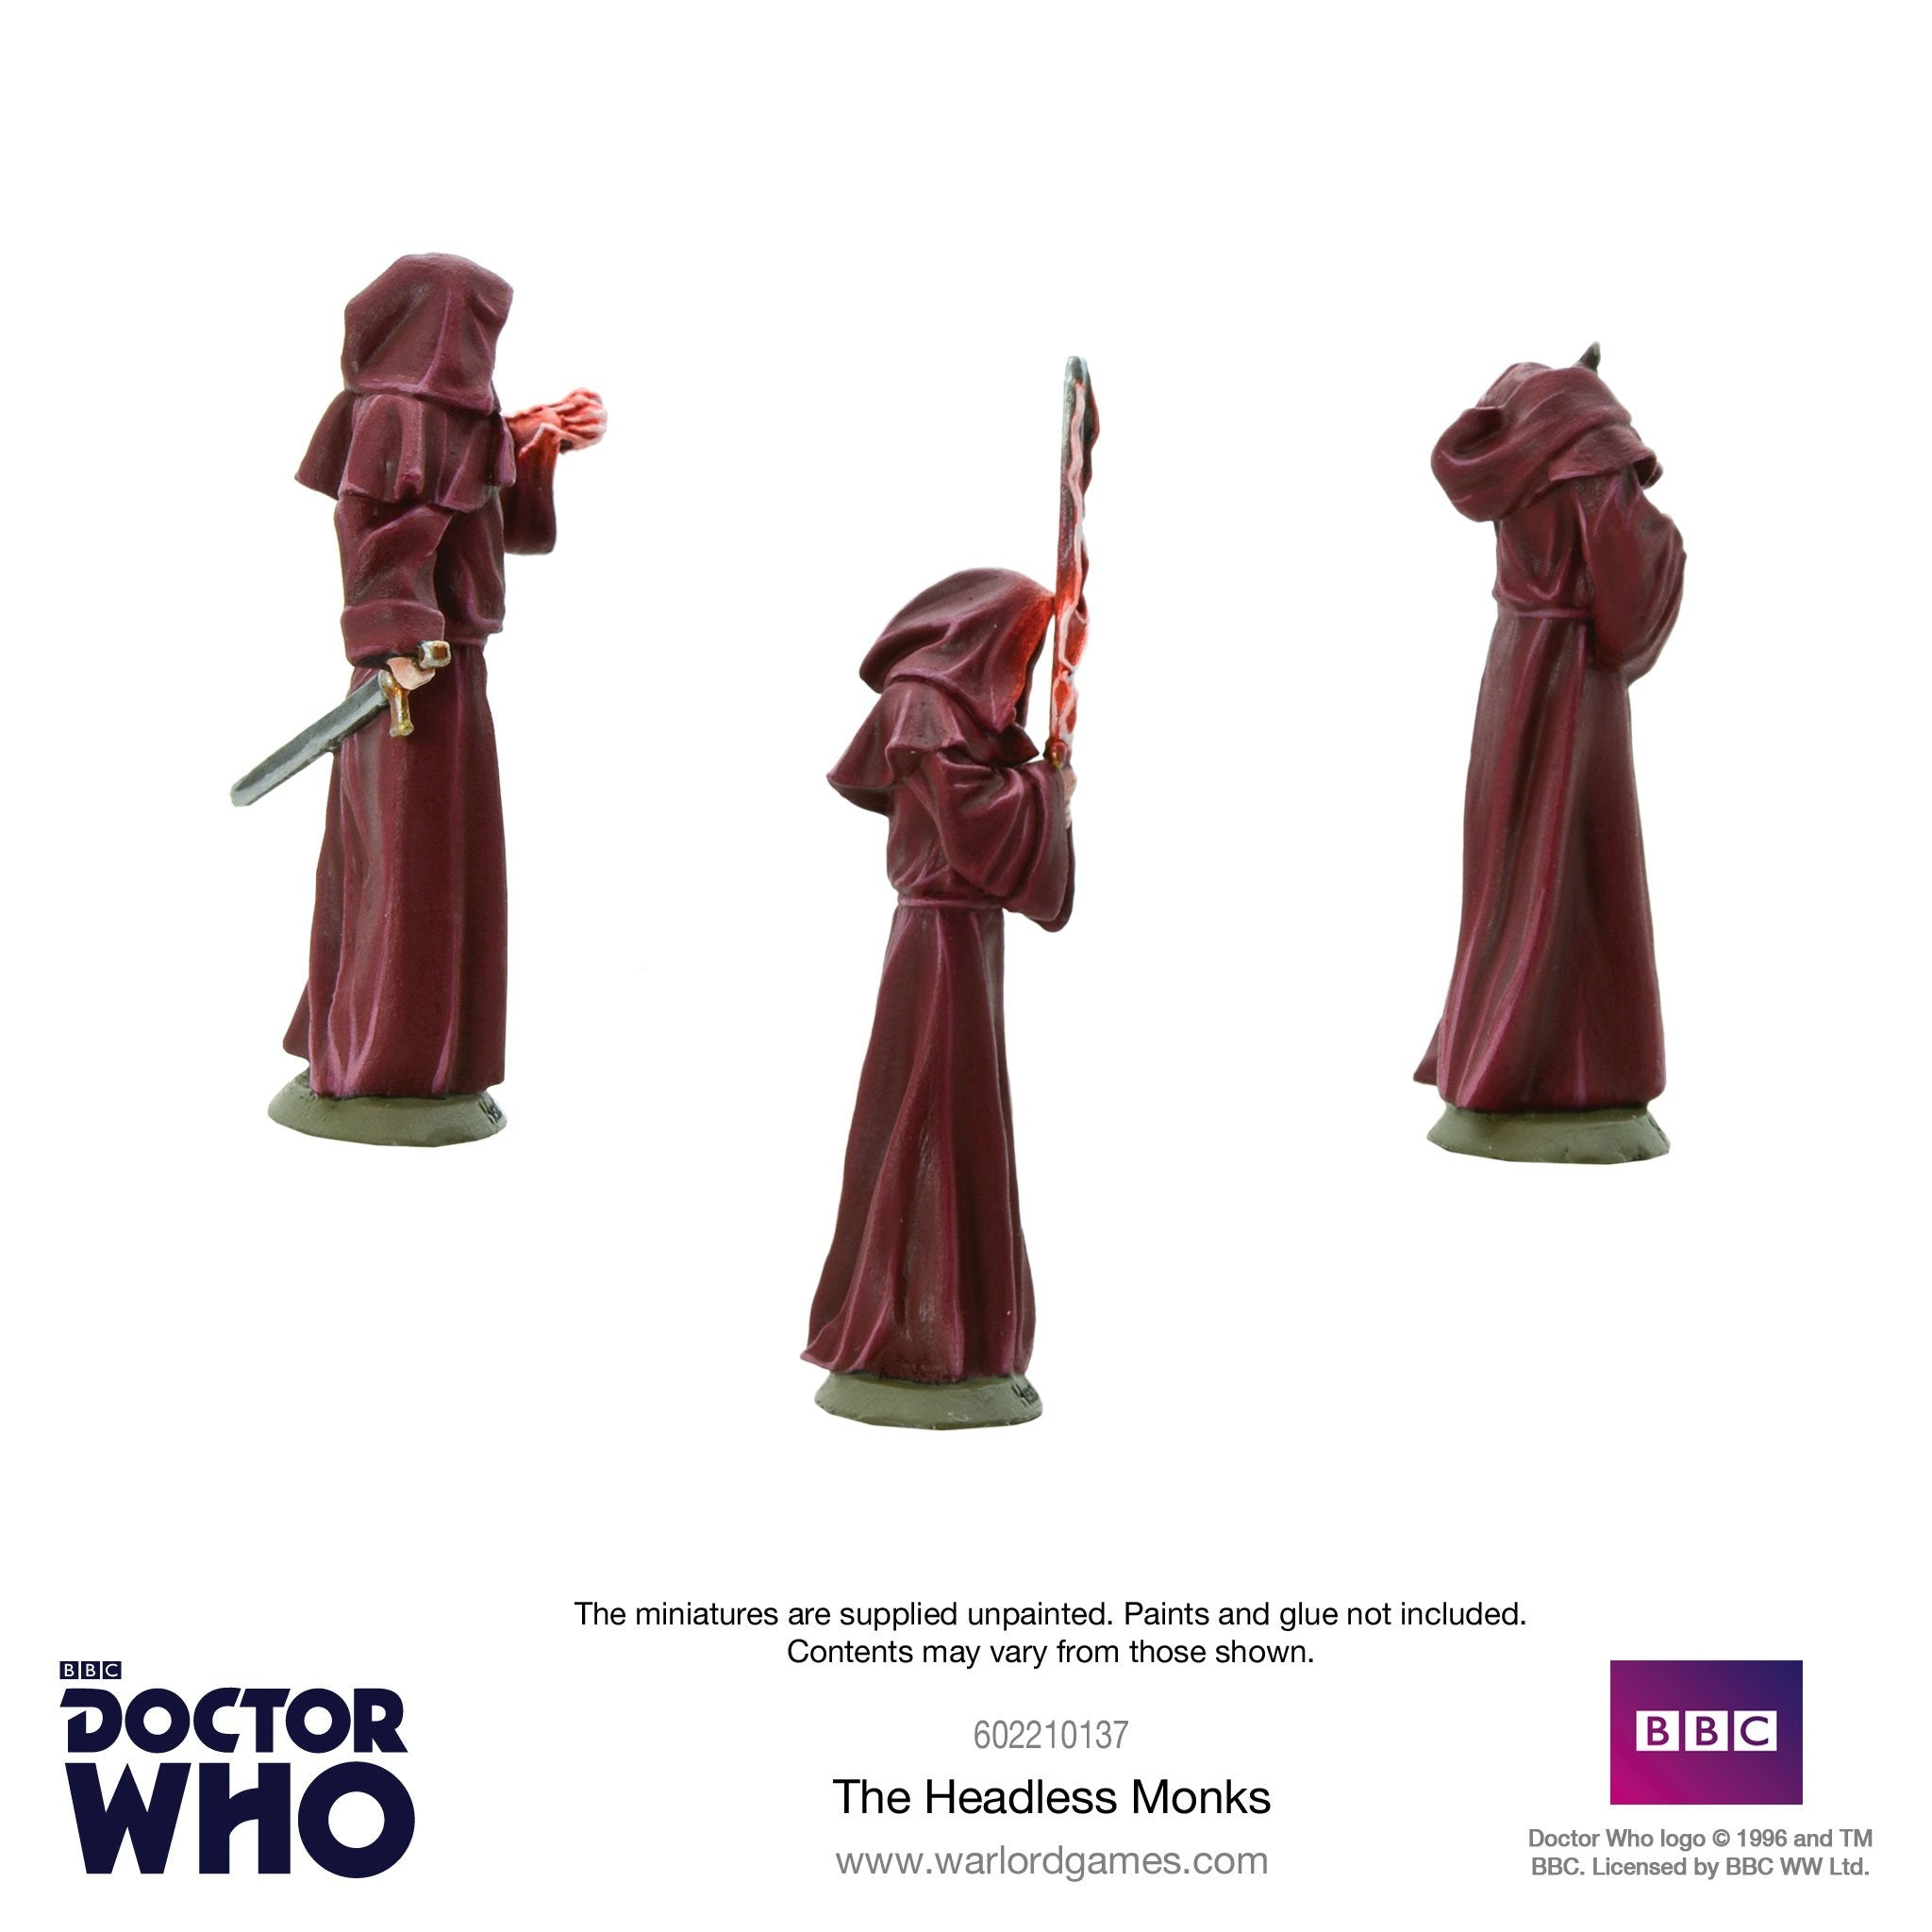 The Headless Monks